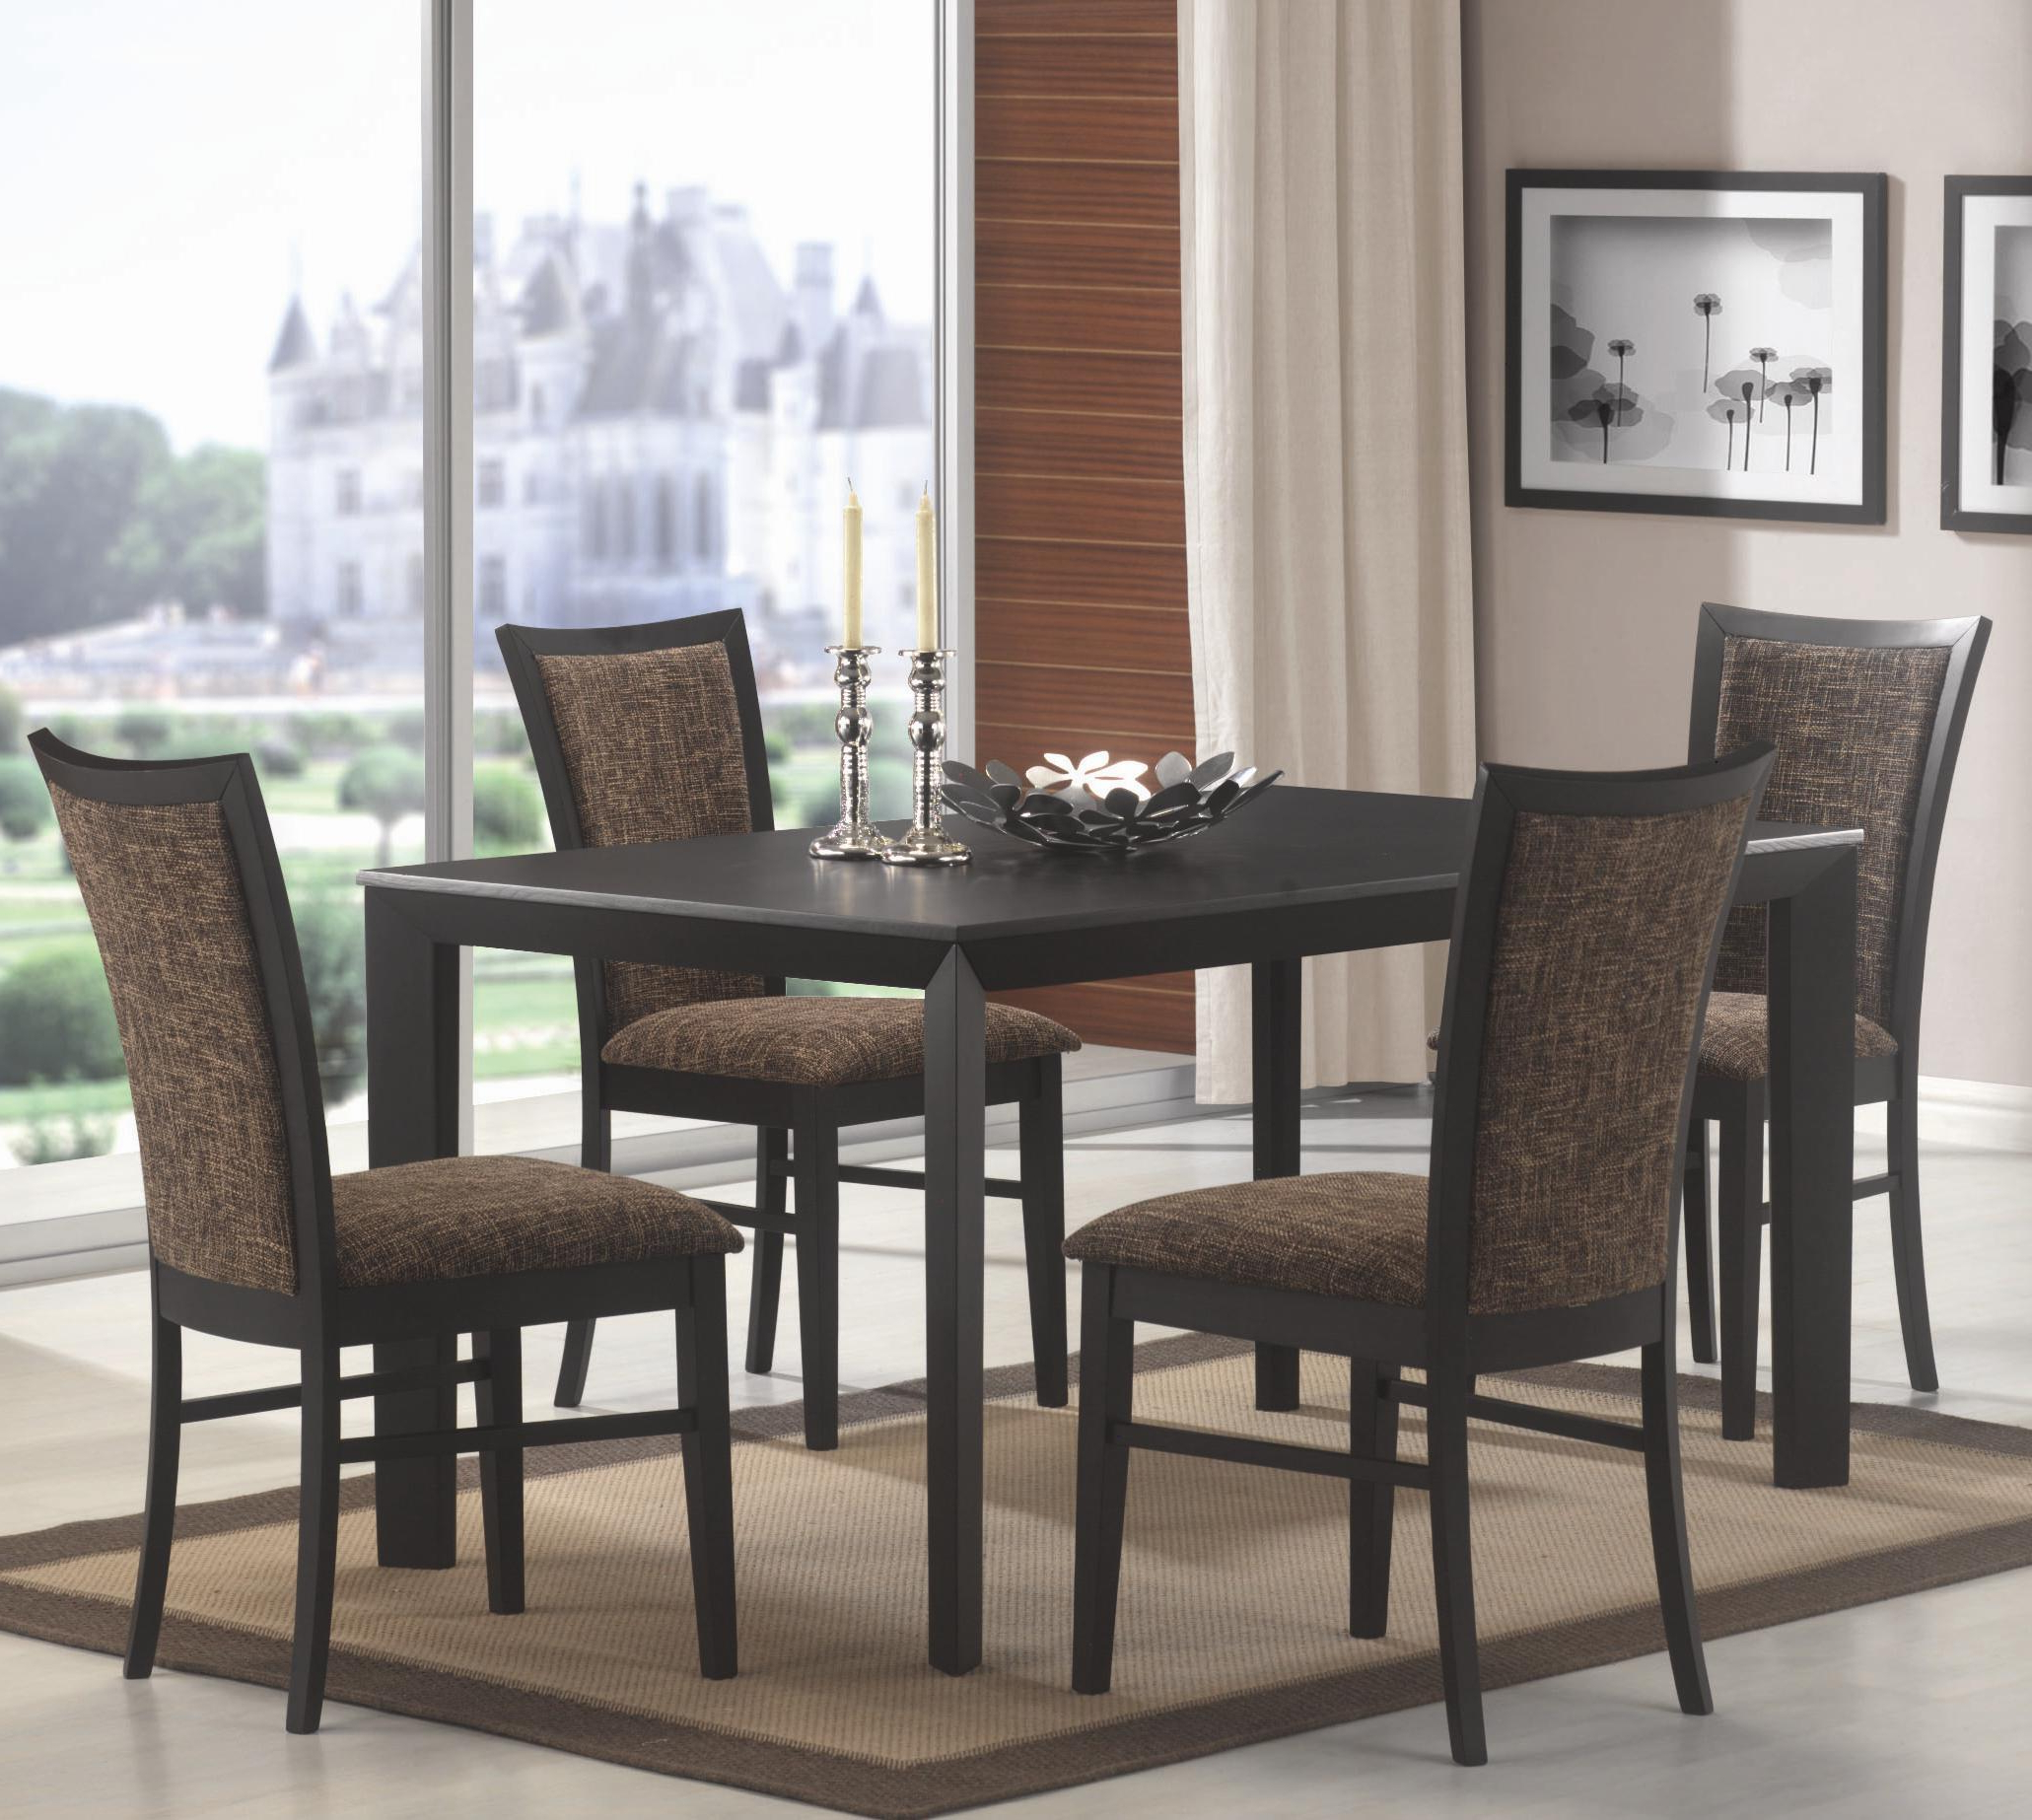 Anette 3 Piece Counter Height Dining Sets With Well Liked Santa Clara Furniture Store, San Jose Furniture Store, Sunnyvale (View 12 of 25)